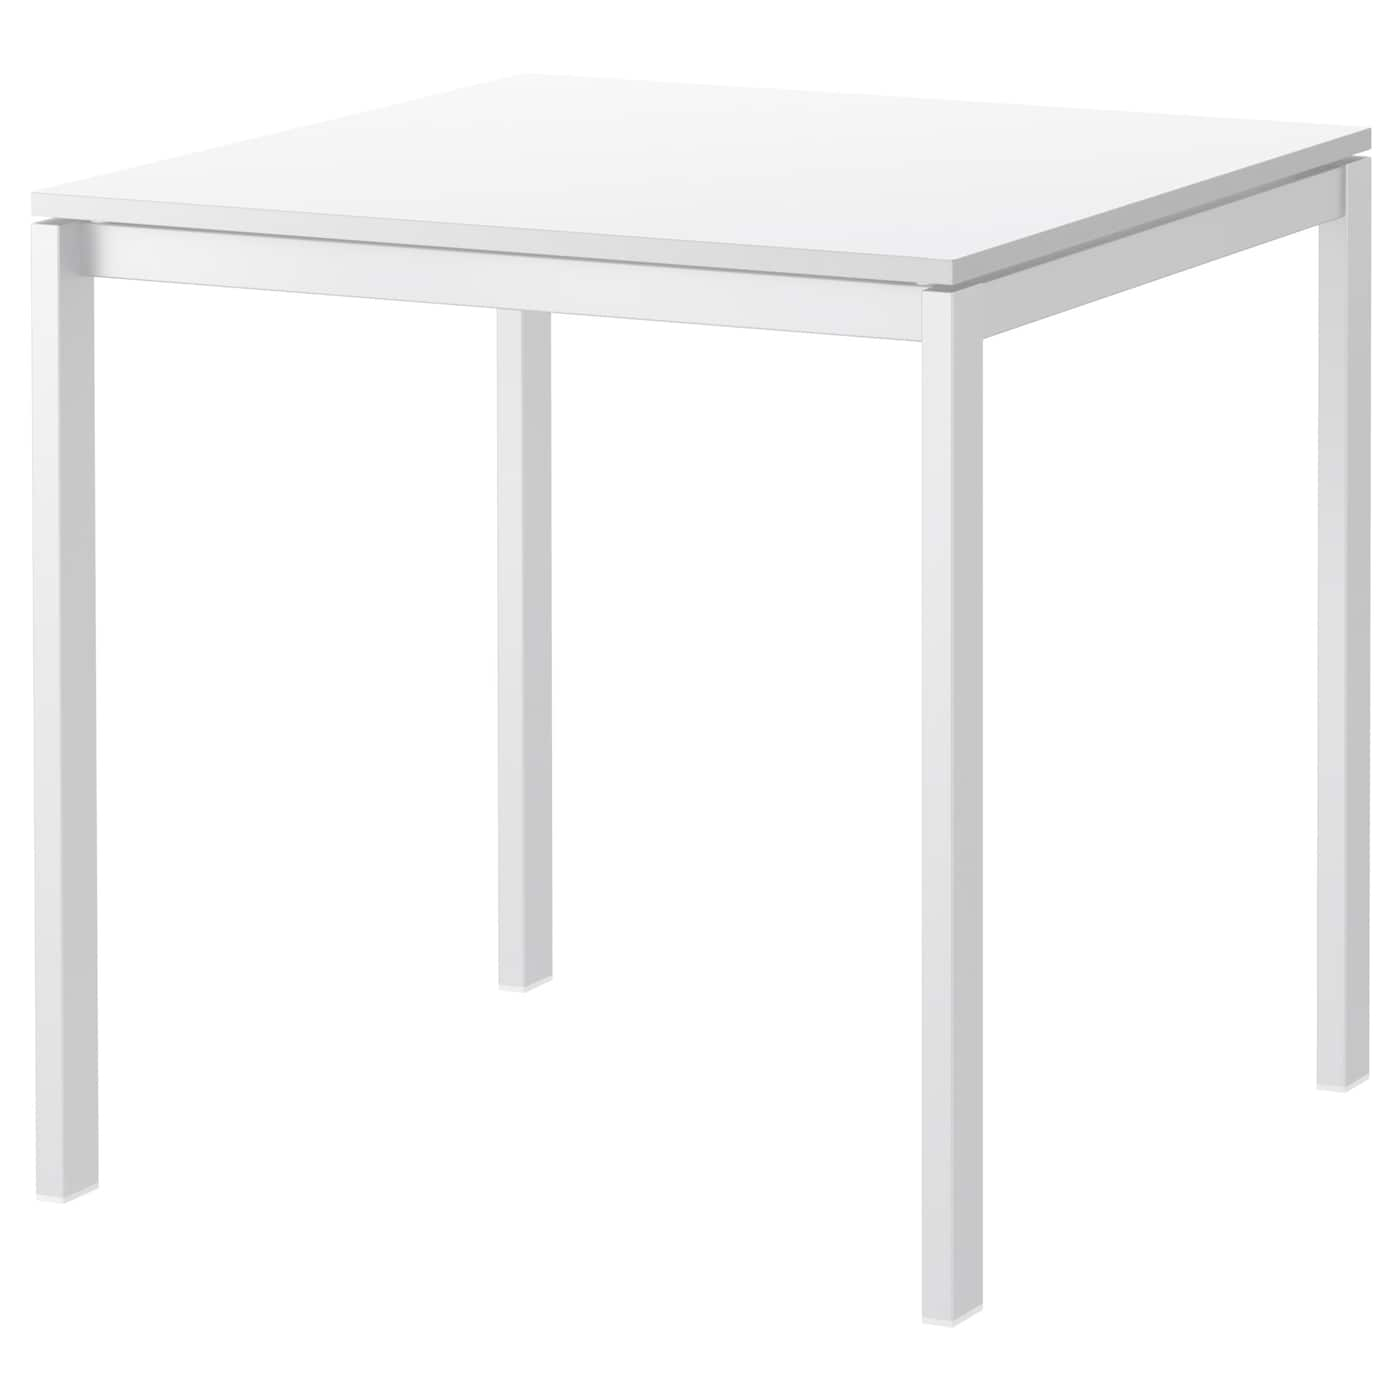 4 Seater Dining Tables | IKEA